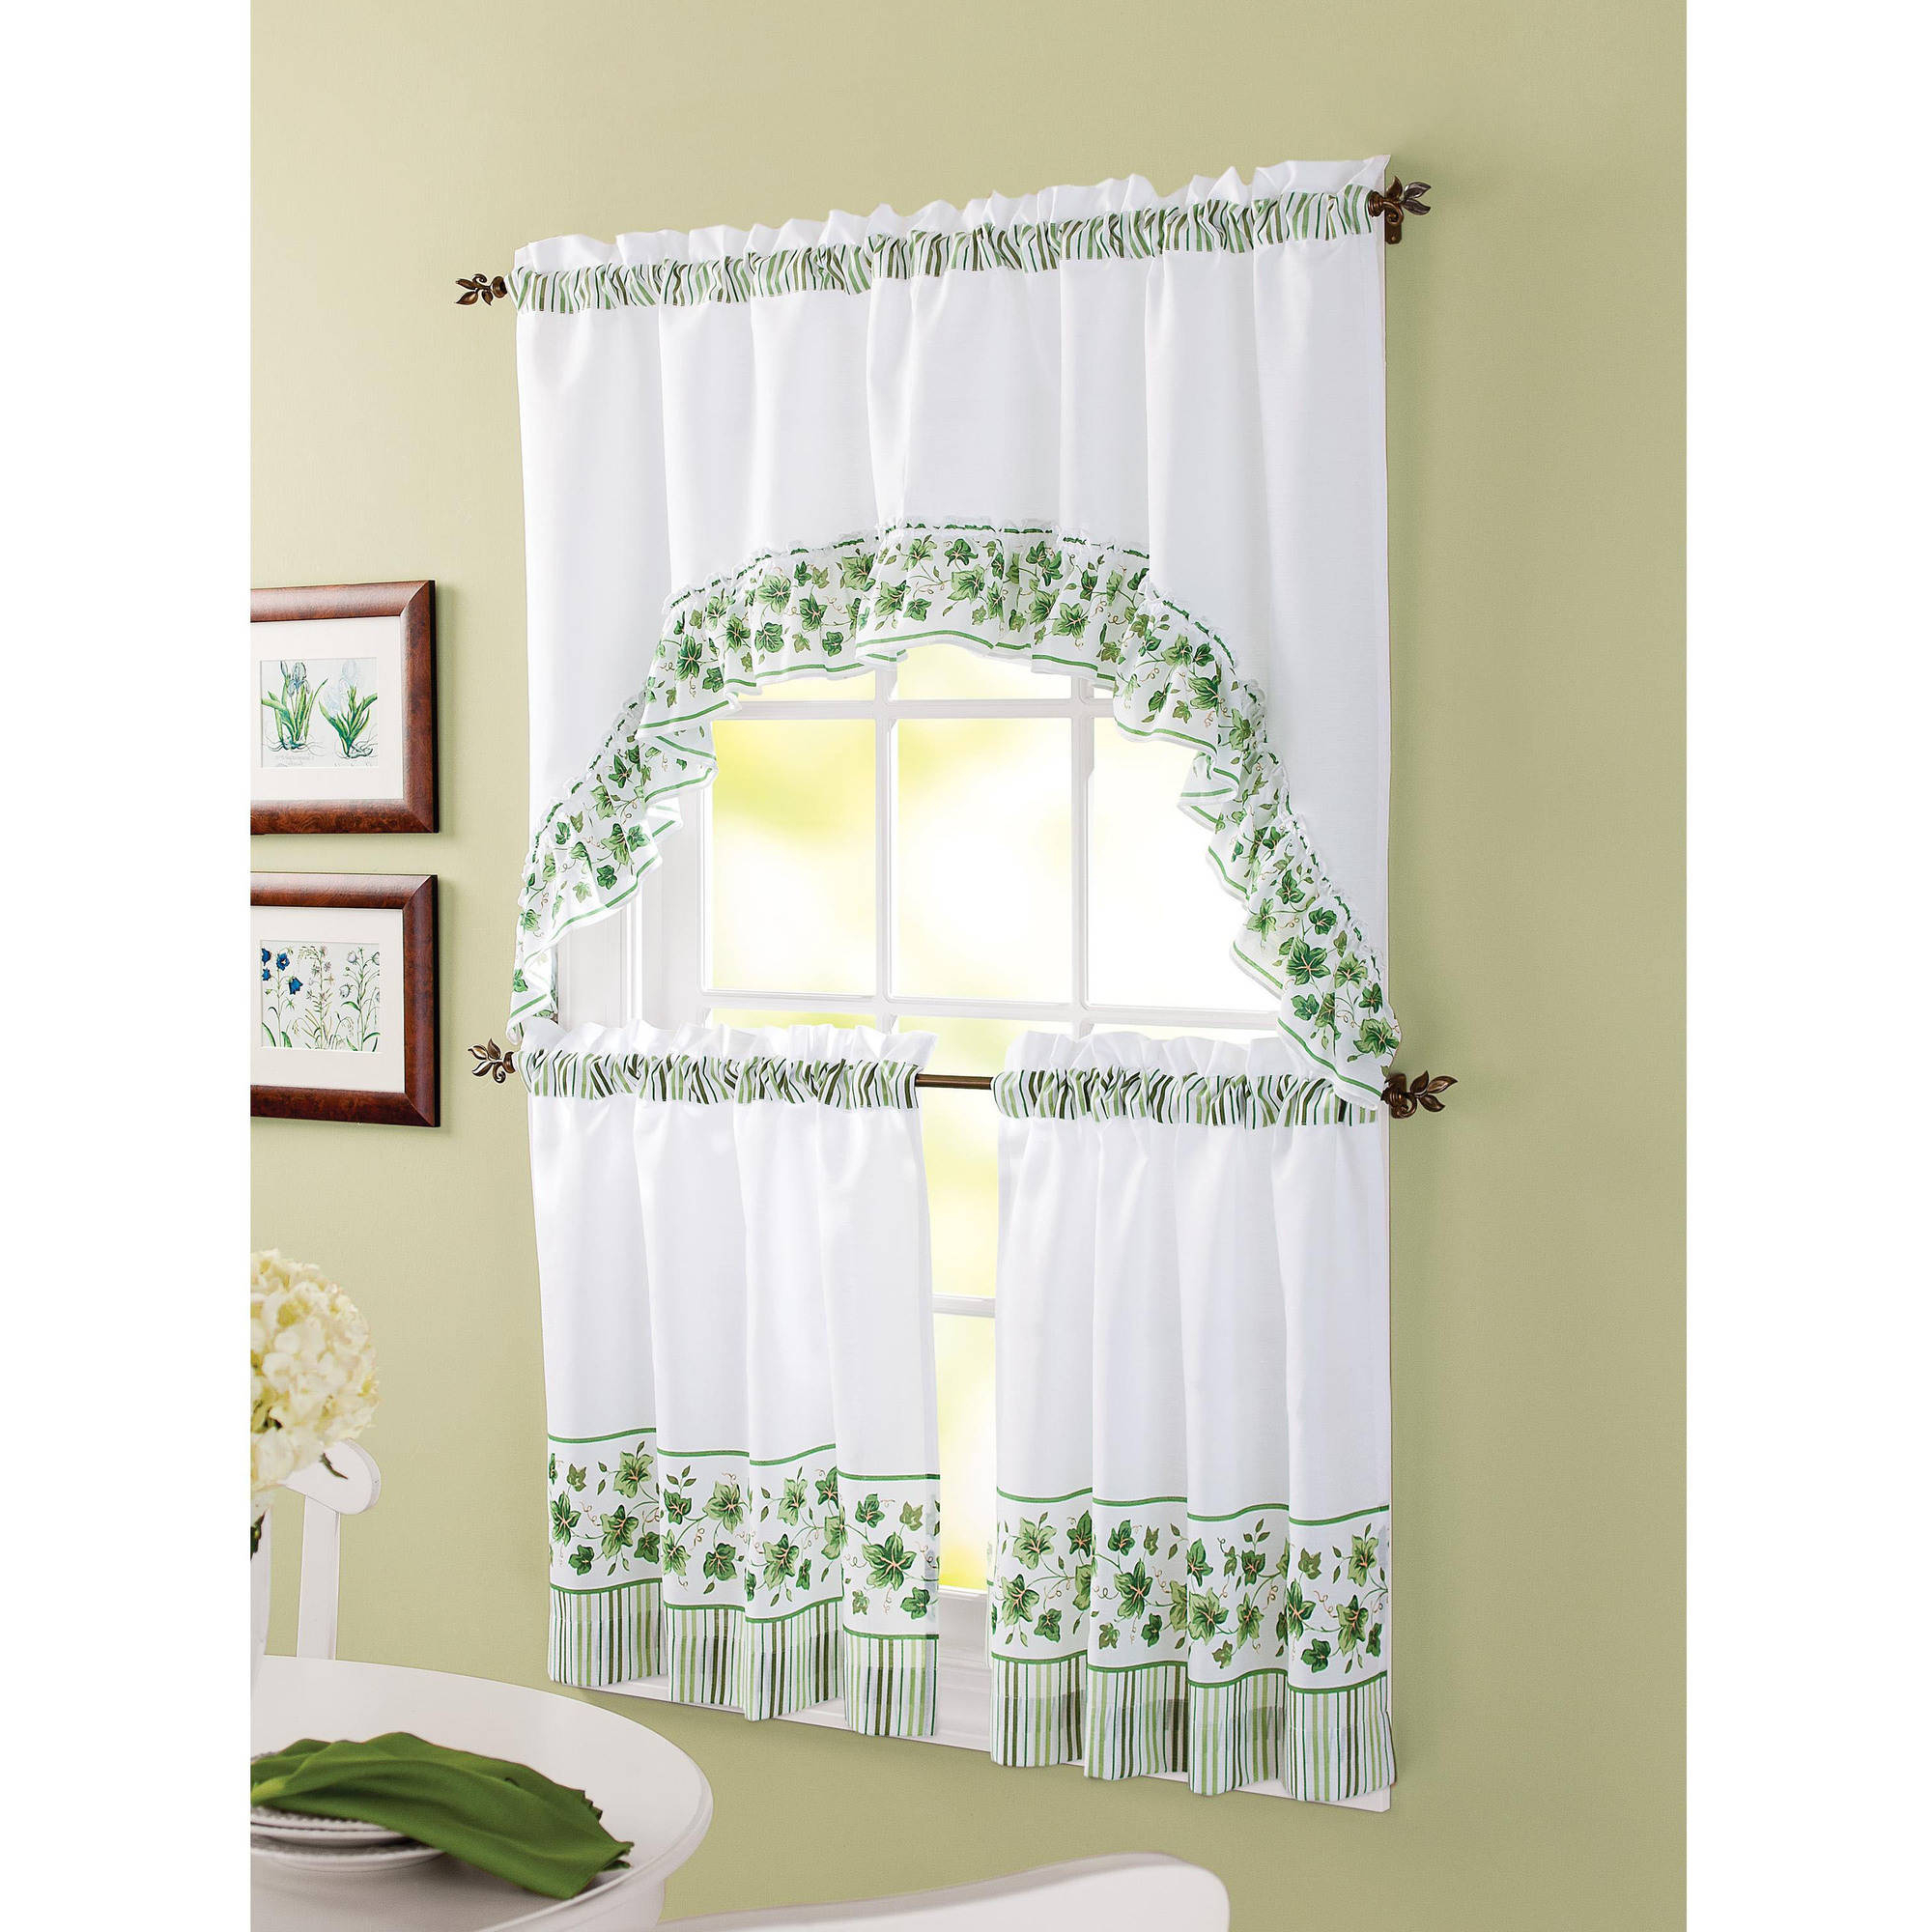 Trendy Cotton Blend Ivy Floral Tier Curtain And Swag Sets In Better Homes & Gardens Ivy Kitchen Curtain Set (View 17 of 20)